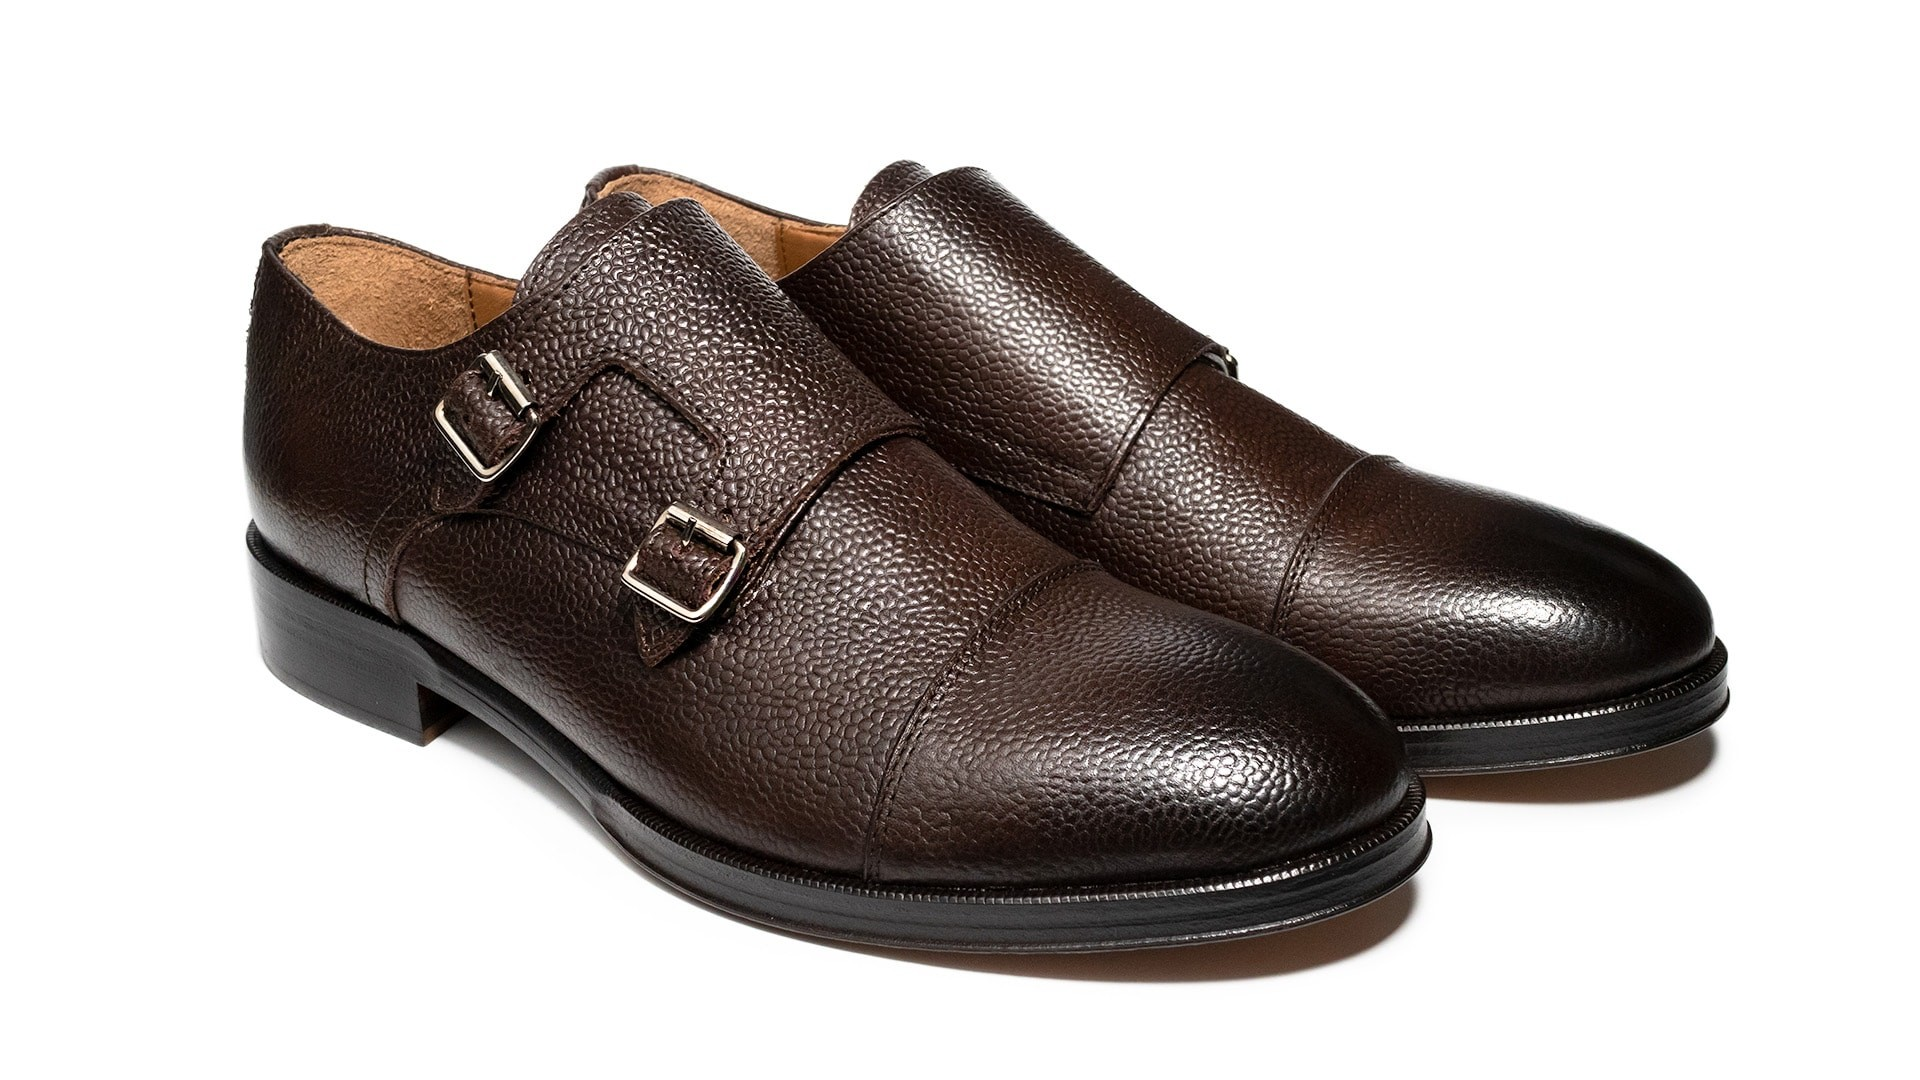 Monk Shoes Scotch Grain T.Moro